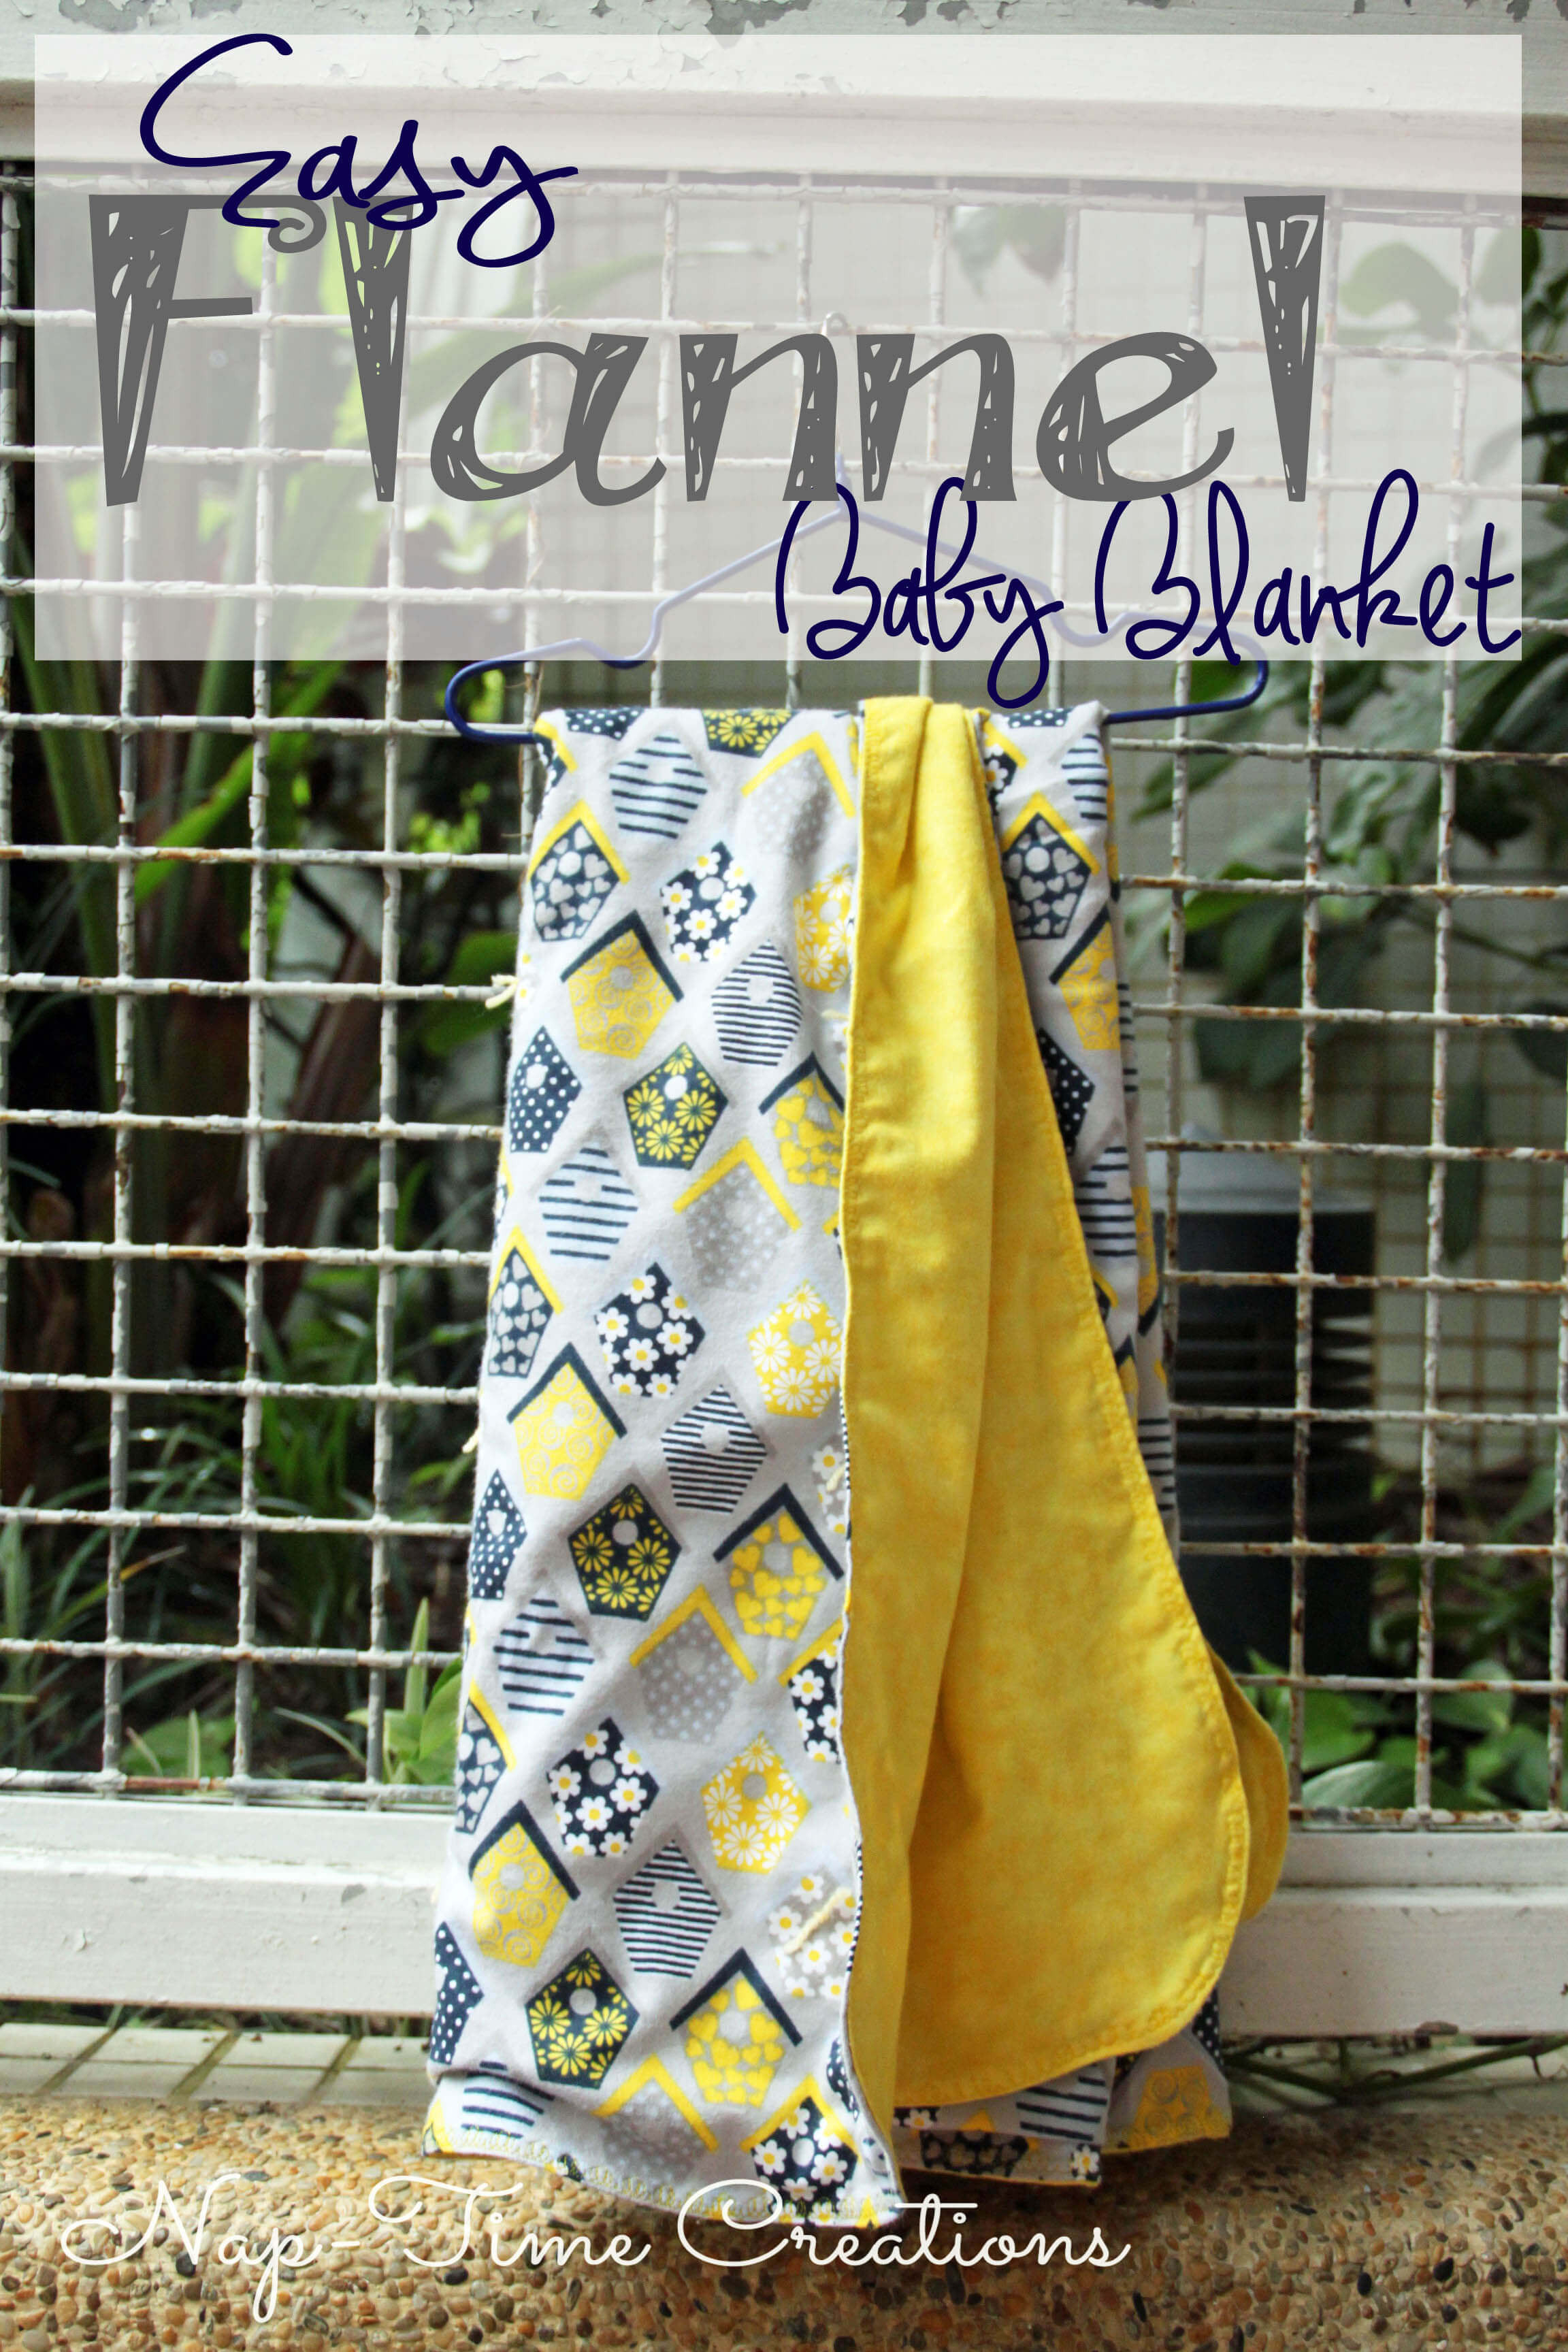 Easy Baby Blanket Inspirational Easy Baby Blanket Sewing Tutorial Nap Time Creations Of Marvelous 42 Images Easy Baby Blanket